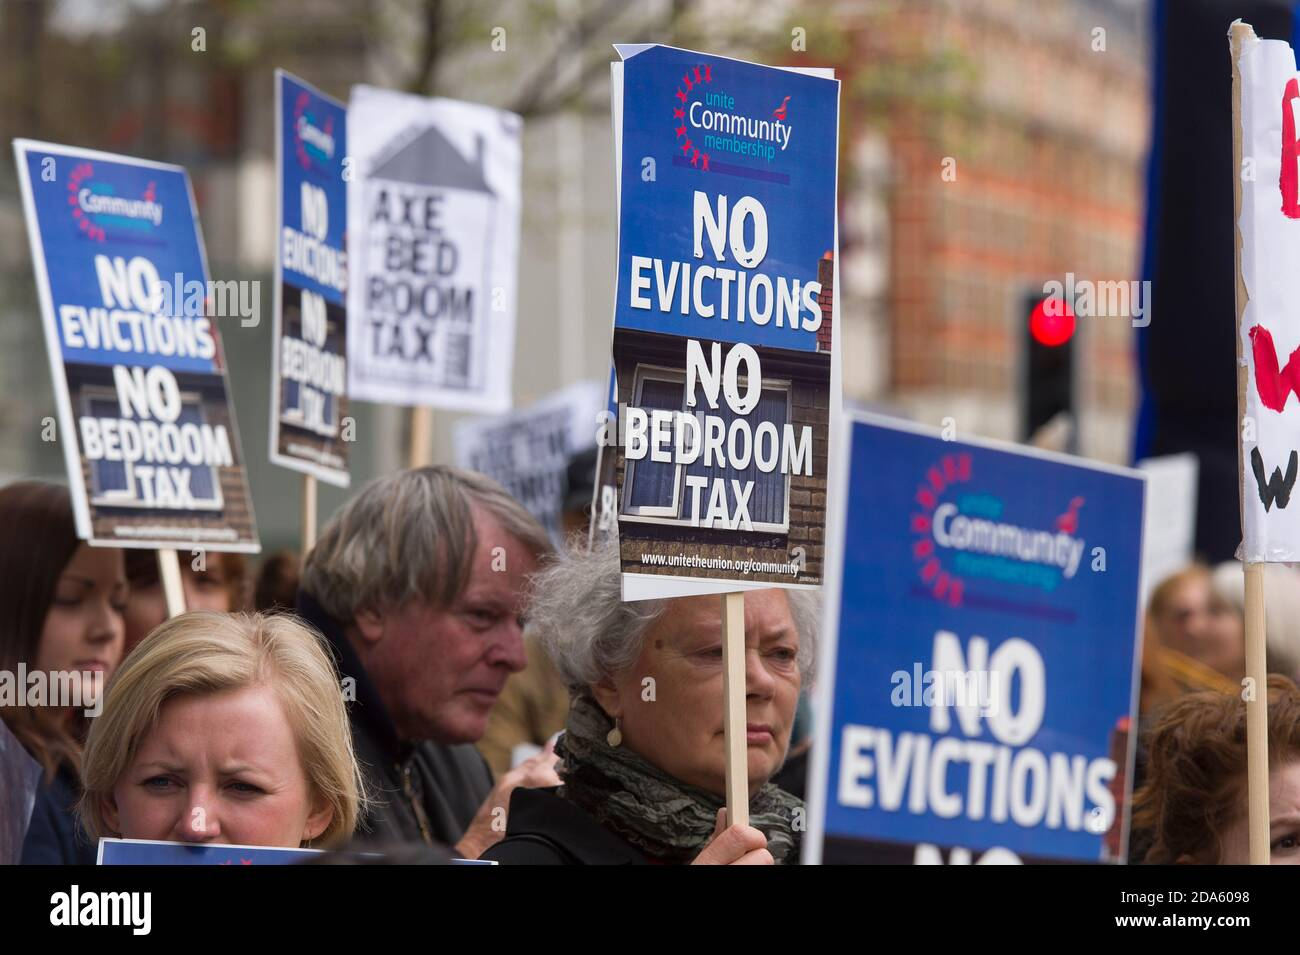 """Protest to mark the first anniversary of the 'Bedroom Tax', outside One Hyde Park, one of London's most expensive residence. The Welfare Reform Act 2012, which came into force on 1 April 2013 included changes housing benefit rules. These changes include an """"under-occupancy penalty"""" which reduces the amount of benefit paid to claimants if they are deemed to have too much living space in the property they are claiming housing benefit on, these changed became know as the 'Bedroom Tax'.  One Hyde Park, Knightsbridge, London, UK.  5 Apr 2014 Stock Photo"""